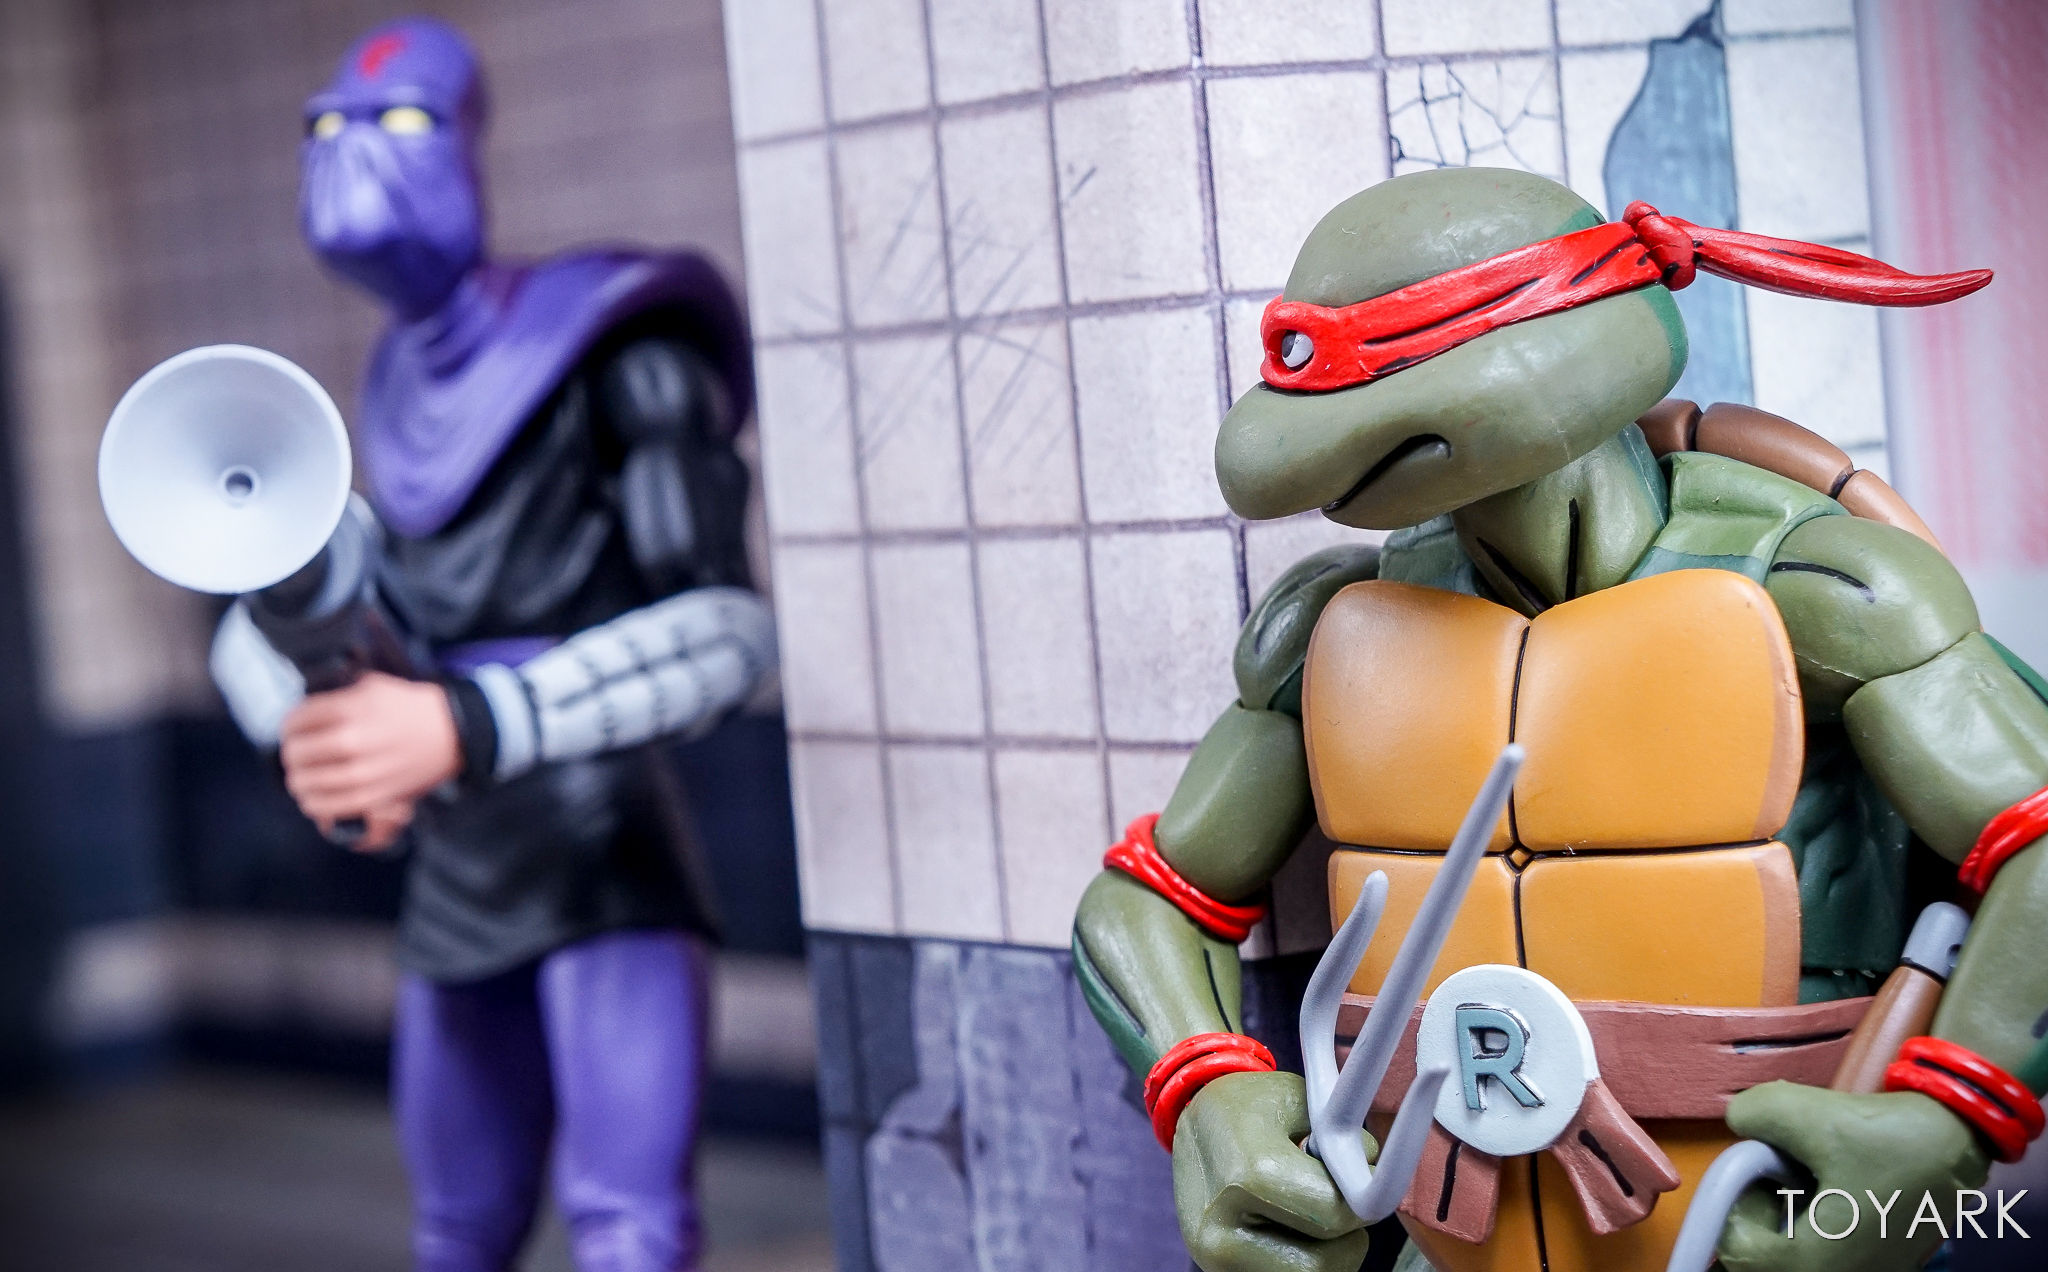 http://news.toyark.com/wp-content/uploads/sites/4/2017/07/NECA-SDCC-2017-Toon-TMNT-065.jpg